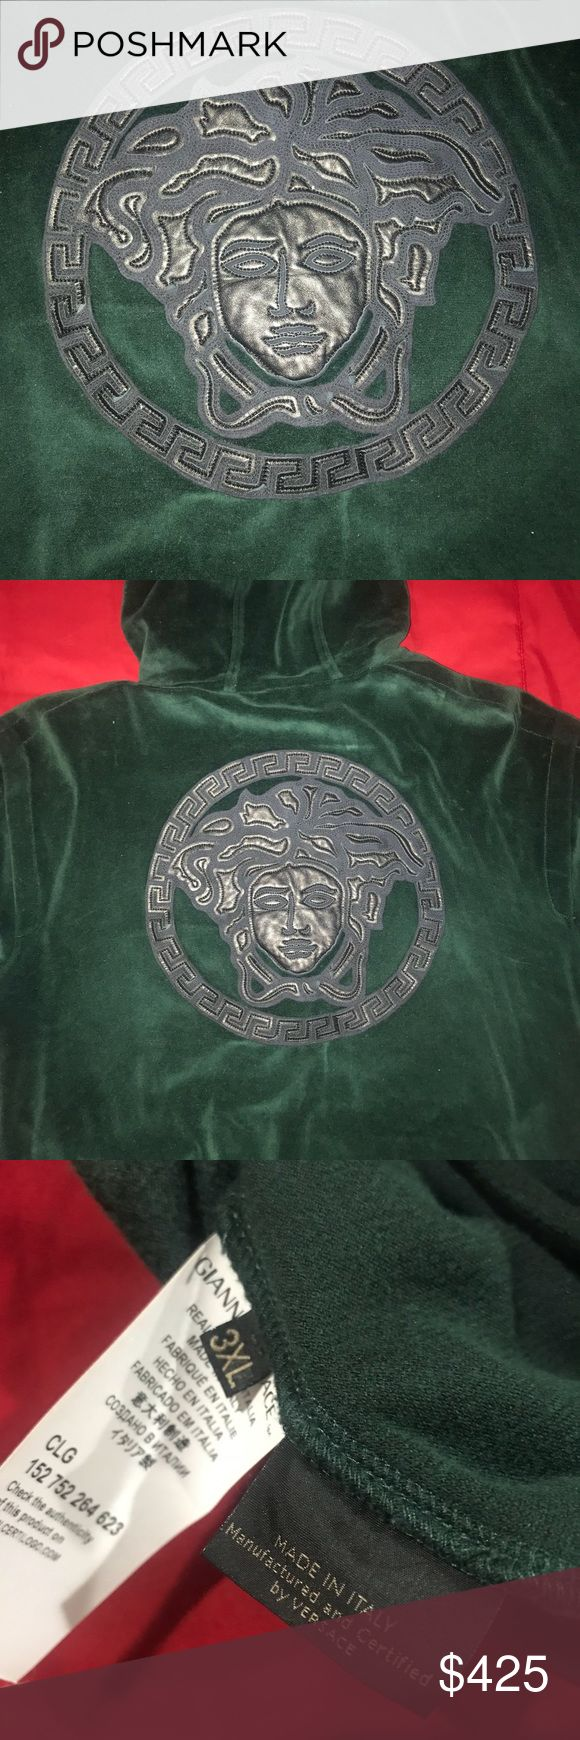 Green Medusa Versace Hoody Emerald Green Versace Hoody   Size 3XL   Like new.   Purchased in Las Vegas Versace Store   Can be bought with sweatpants for bundle deal   Offers are welcome Versace Sweaters Zip Up